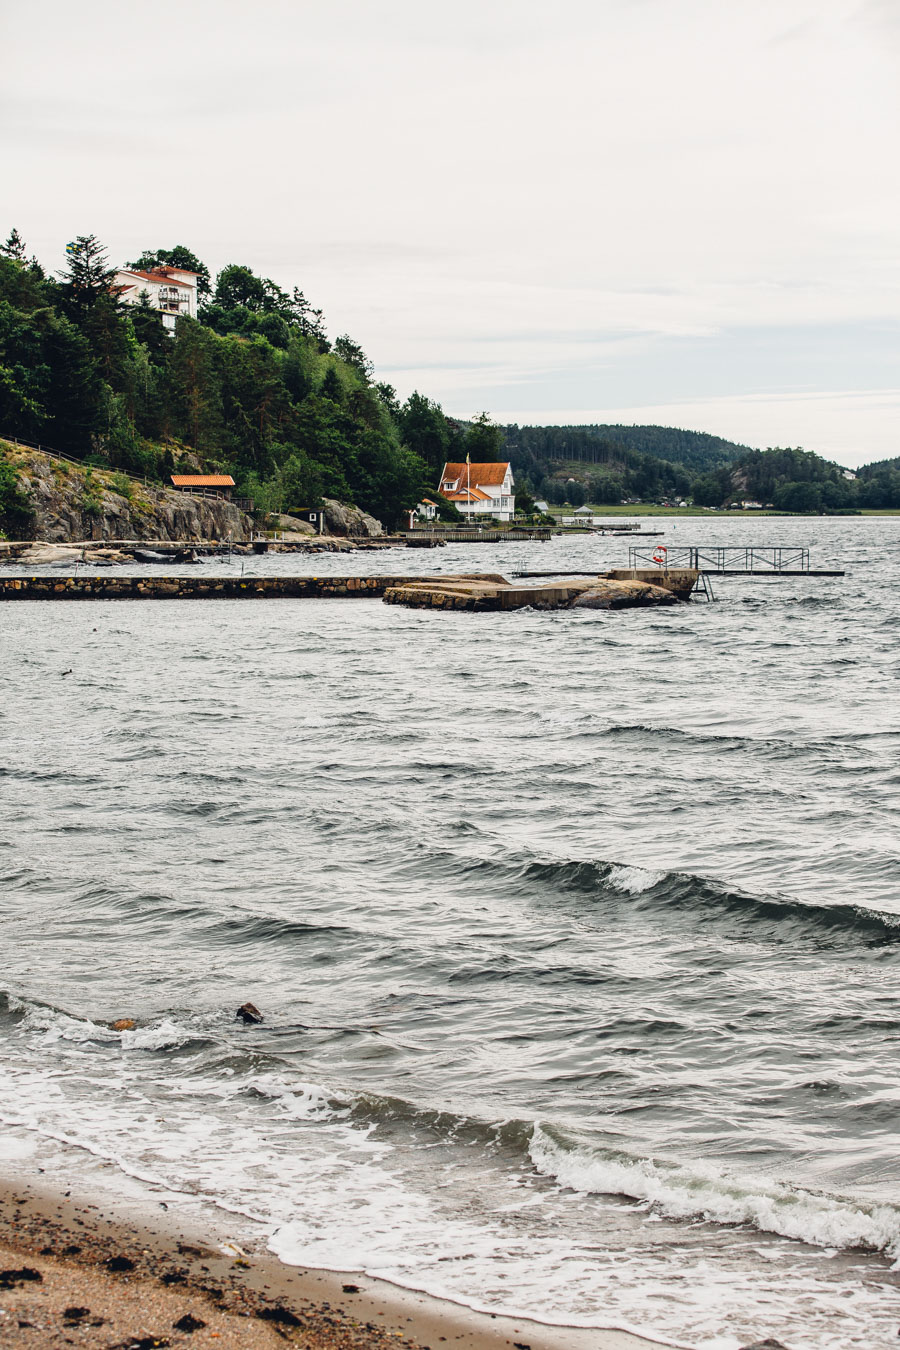 The beach at Ljungskile, Sweden